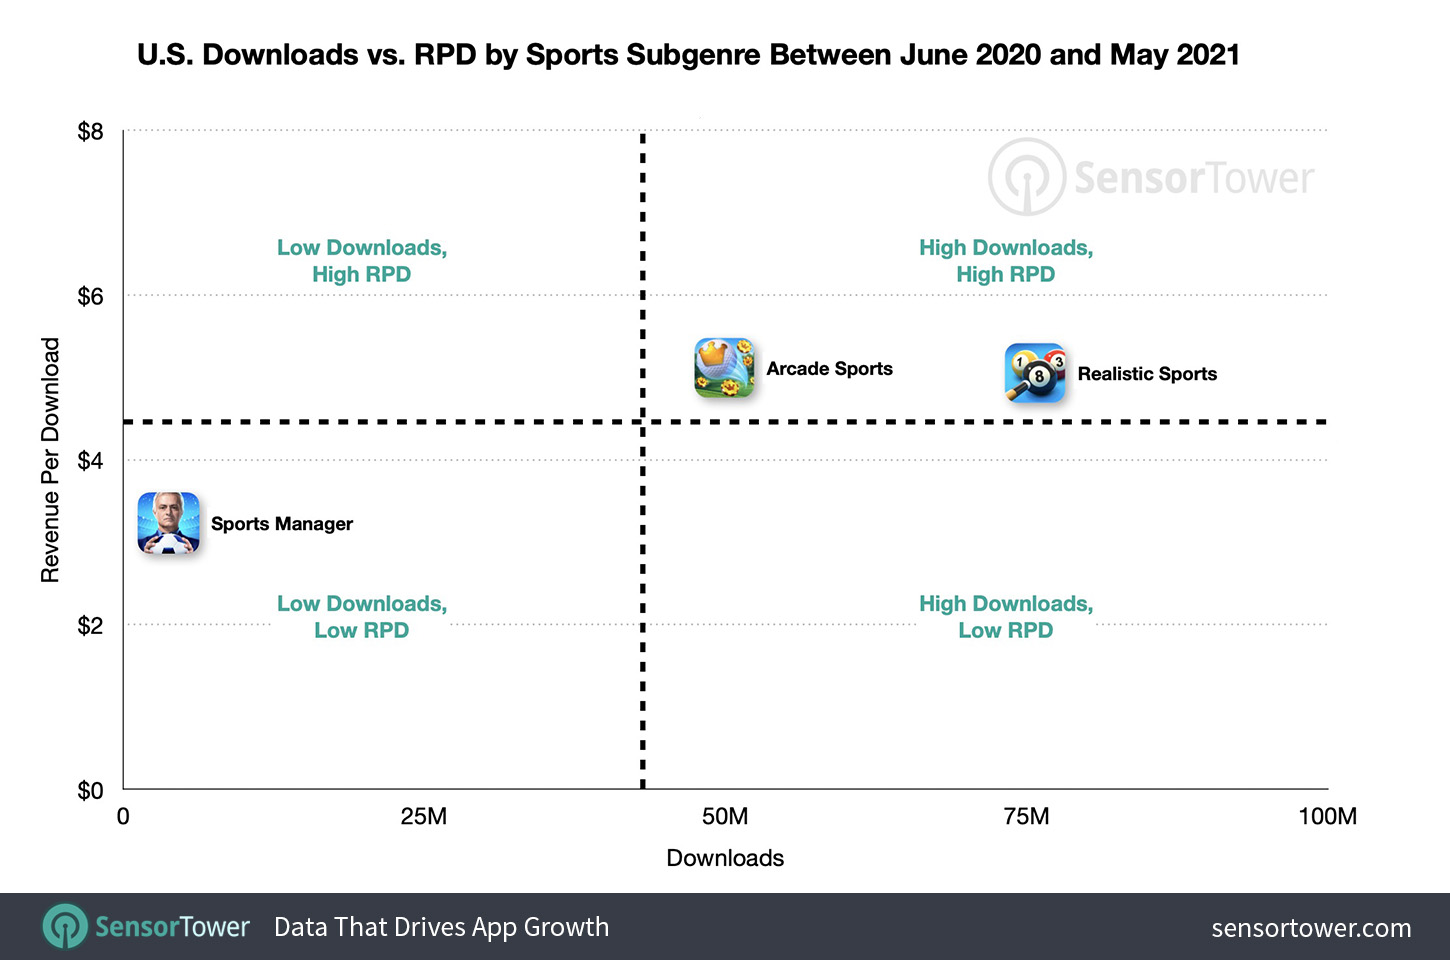 US downloads vs.  RPD by sports game sub-genre between June 1, 2020 and May 31, 2021